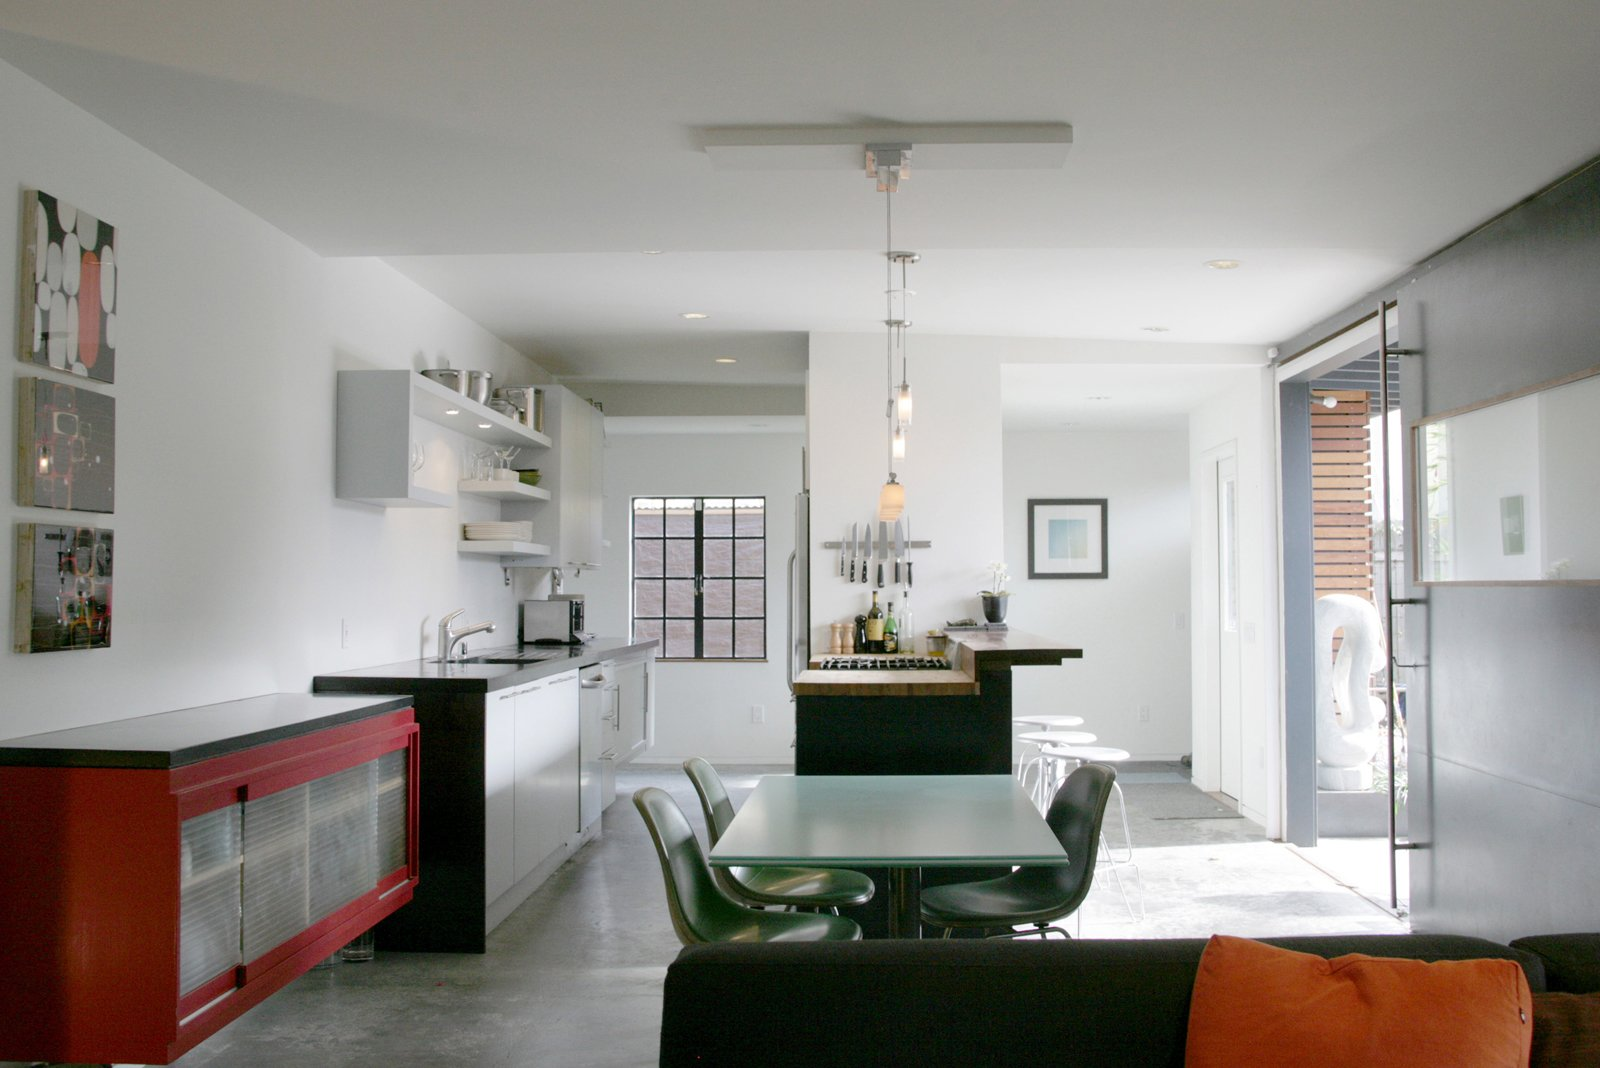 """In the kitchen and dining area, Shoup used ipe wood and installed an energy-efficient hydronic radiant heating system in the concrete floor. """"There's a minimalism that drives the basic design gestures,"""" notes Shoup. """"I tried to temper that with a complementary materials."""" Photo by building Lab inc.  Photo 3 of 11 in Creative Re-Use in Oakland"""